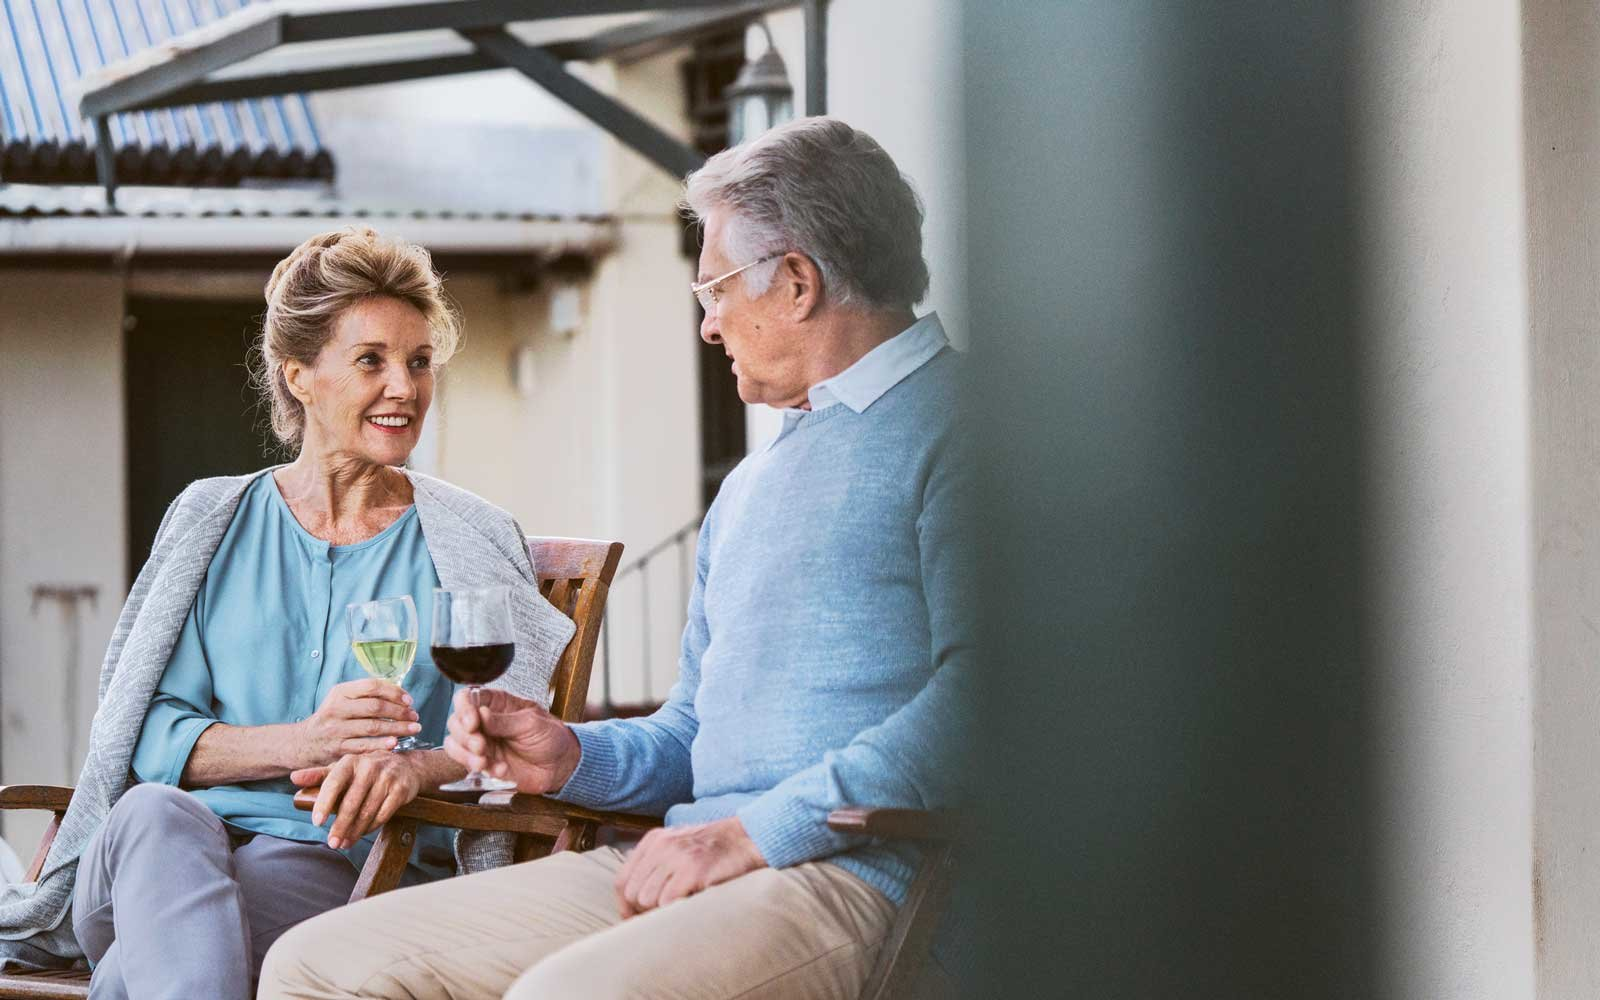 3 Ways to Get the Most Out of a Longer, Healthier Retirement